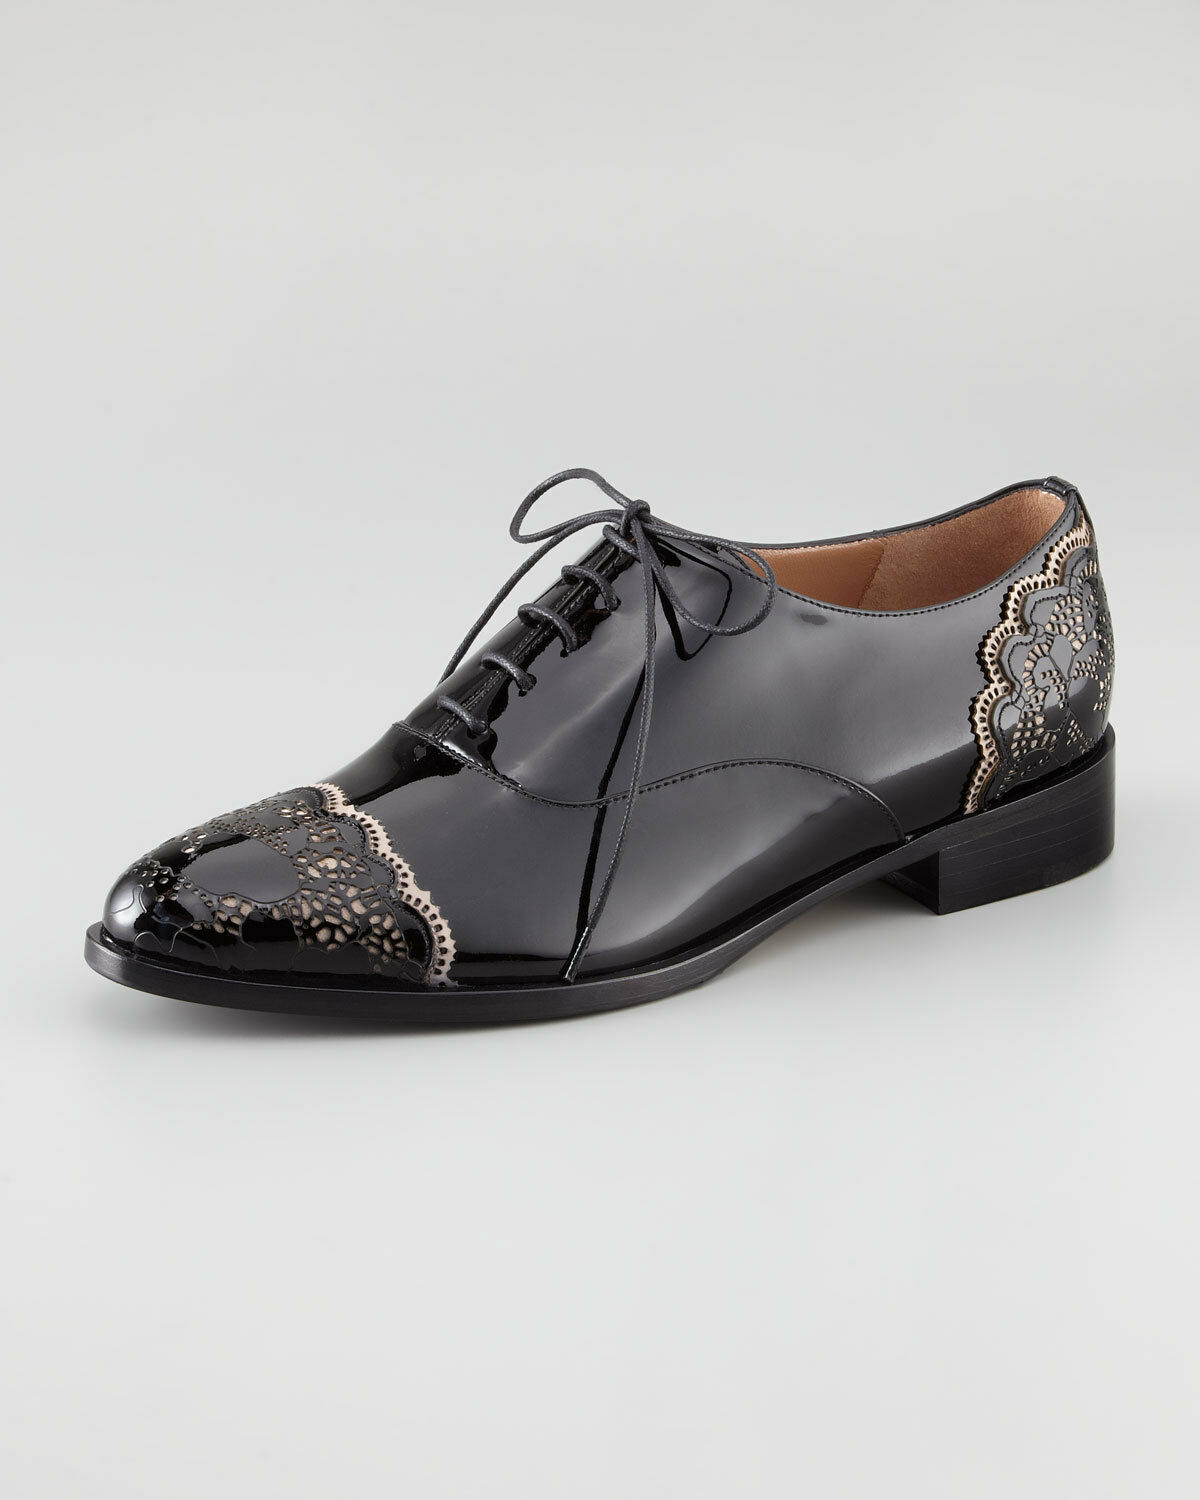 Valentino Patent Leather Lace Oxfords Flats shoes 38,5 US 8,5 NIB